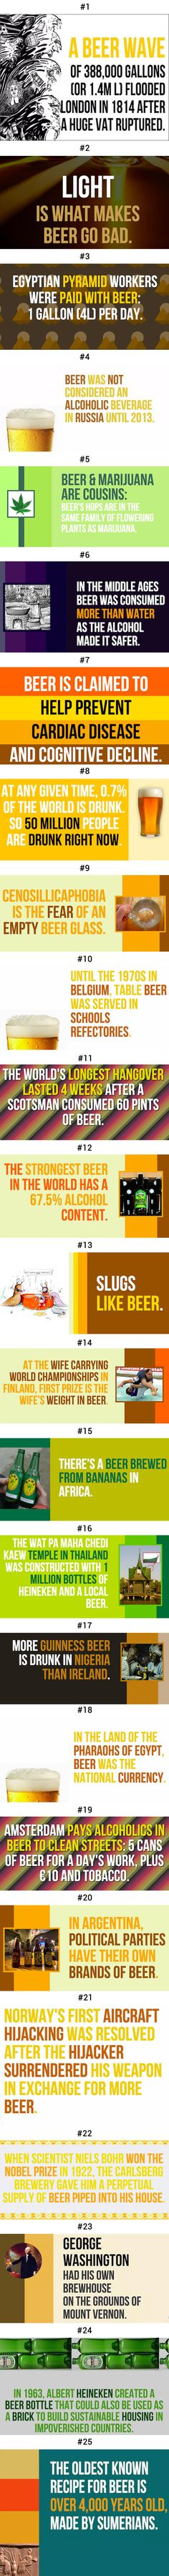 25 Fun Facts About Our Favorite Beer - 9GAG